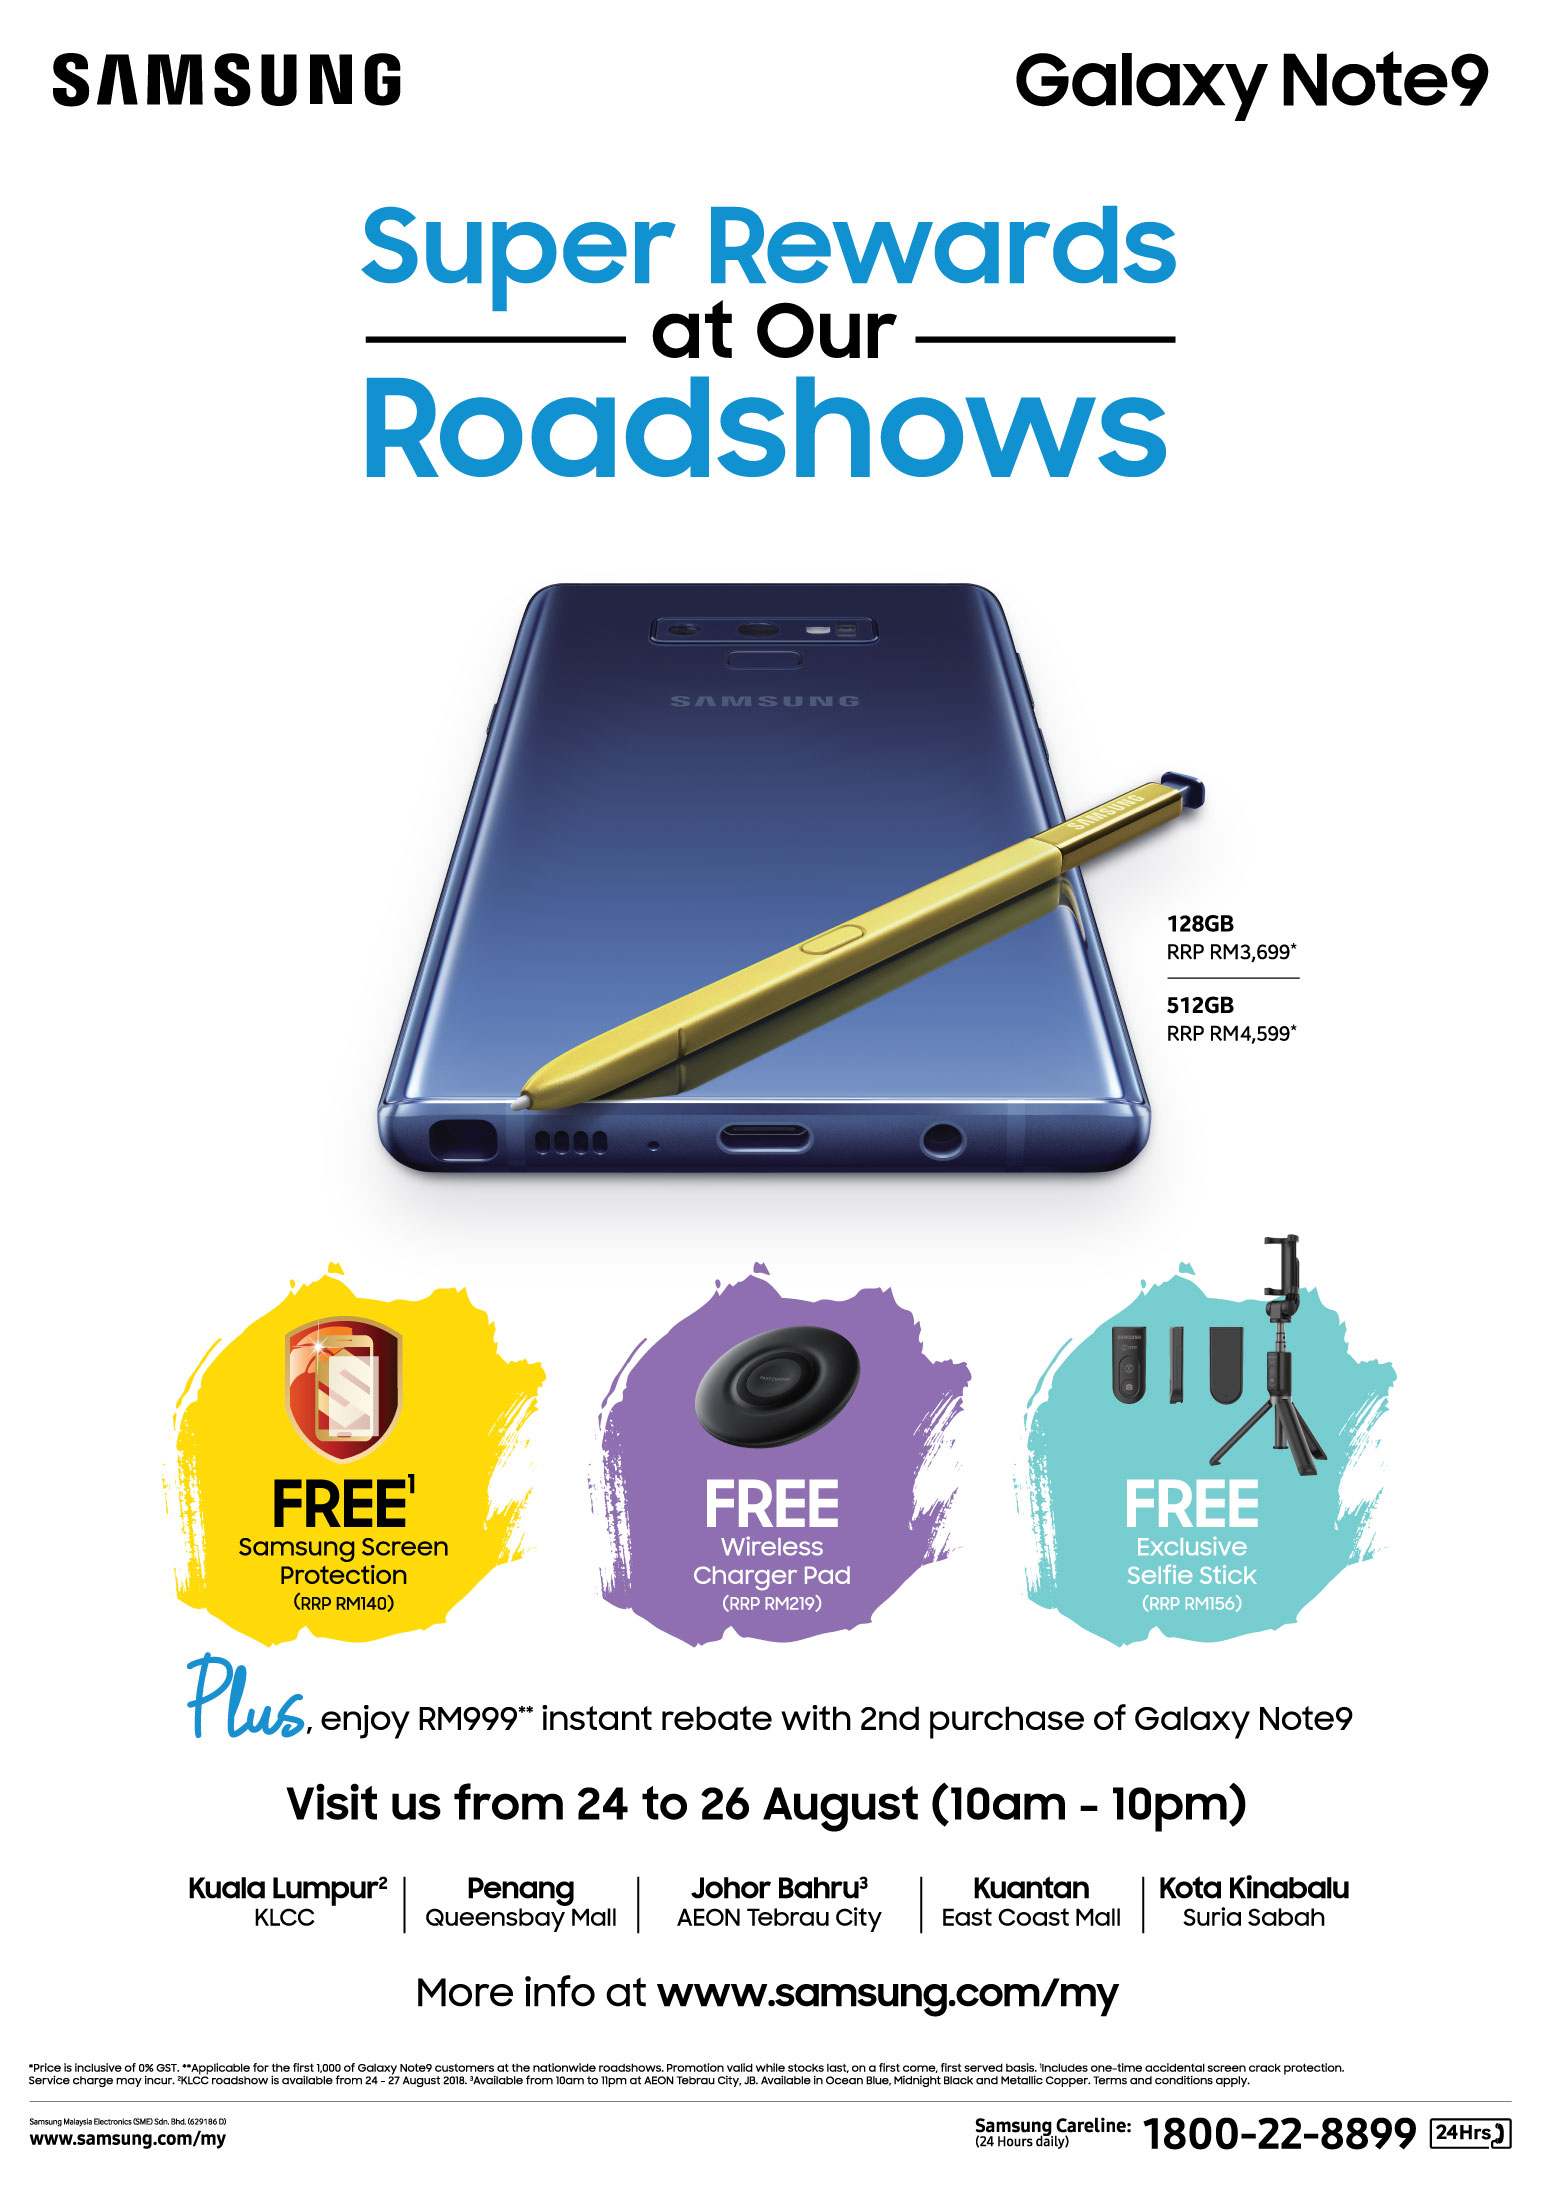 Samsung Galaxy Note9 and S Pen Roadshow